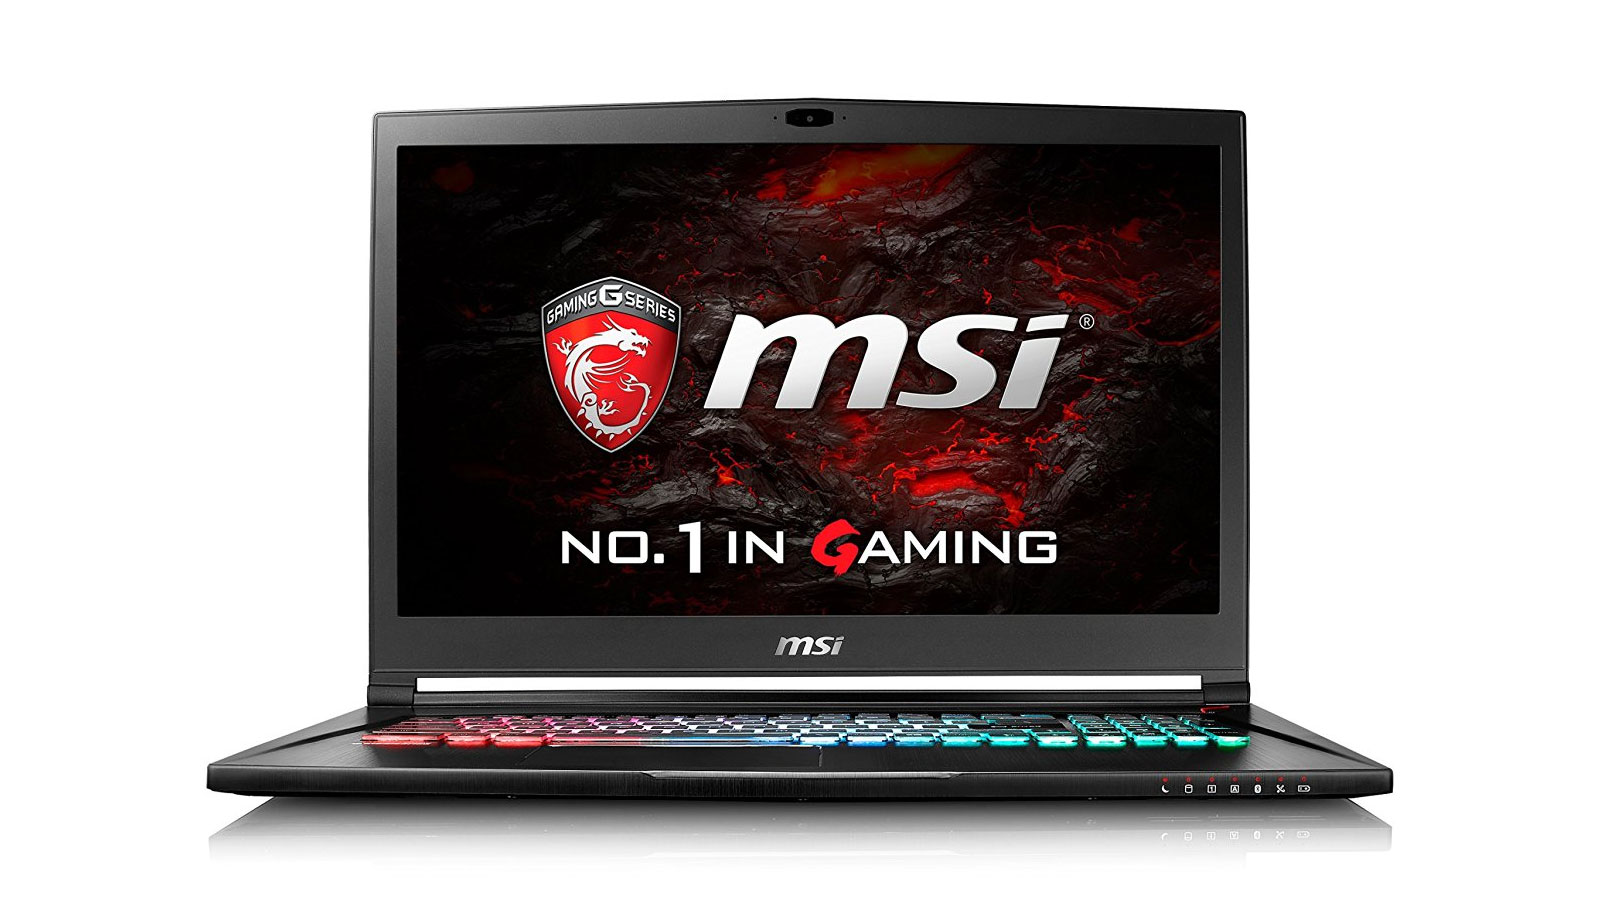 MSI GS73VR review—GTX 1060 goes mobile | PC Gamer